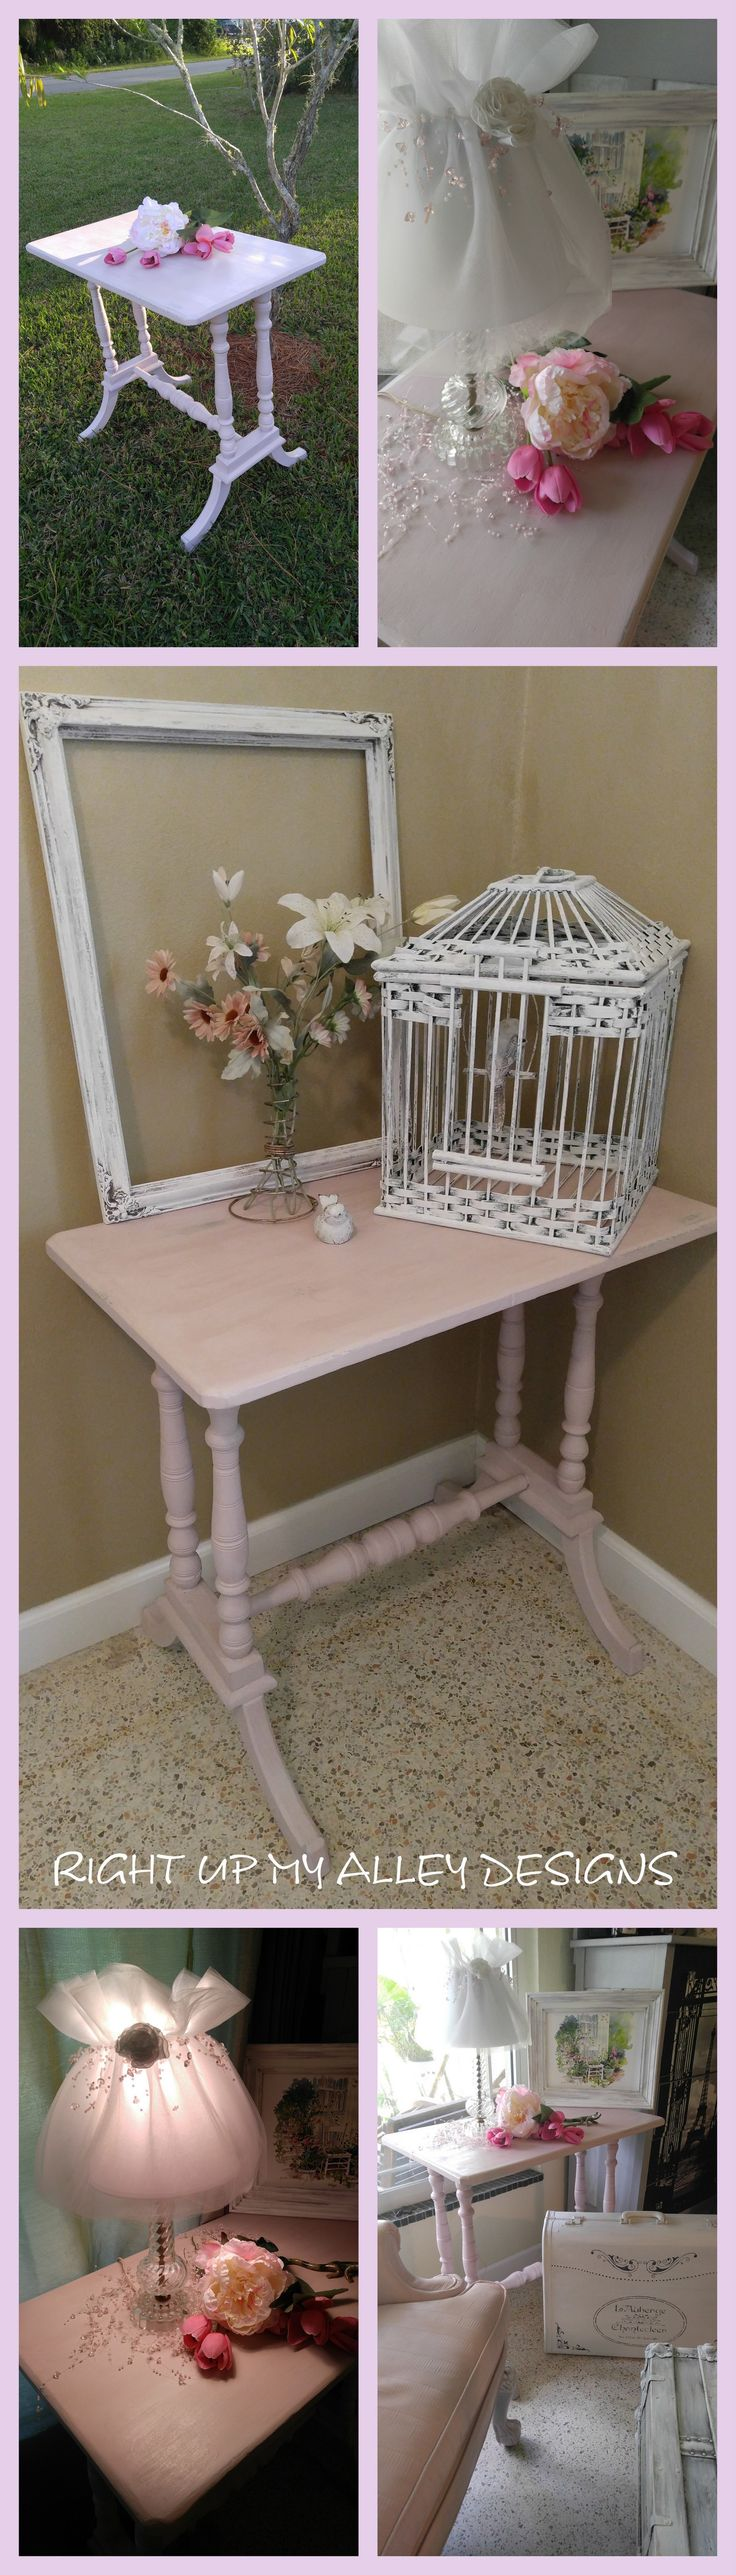 1940's dressed in Antoinette, Annie Sloan's chalk paint by RIGHT UP MY ALLEY DESIGNS. More pics here: https://www.etsy.com/listing/472150952/vintage-pink-tablesmall?ref=shop_home_active_2